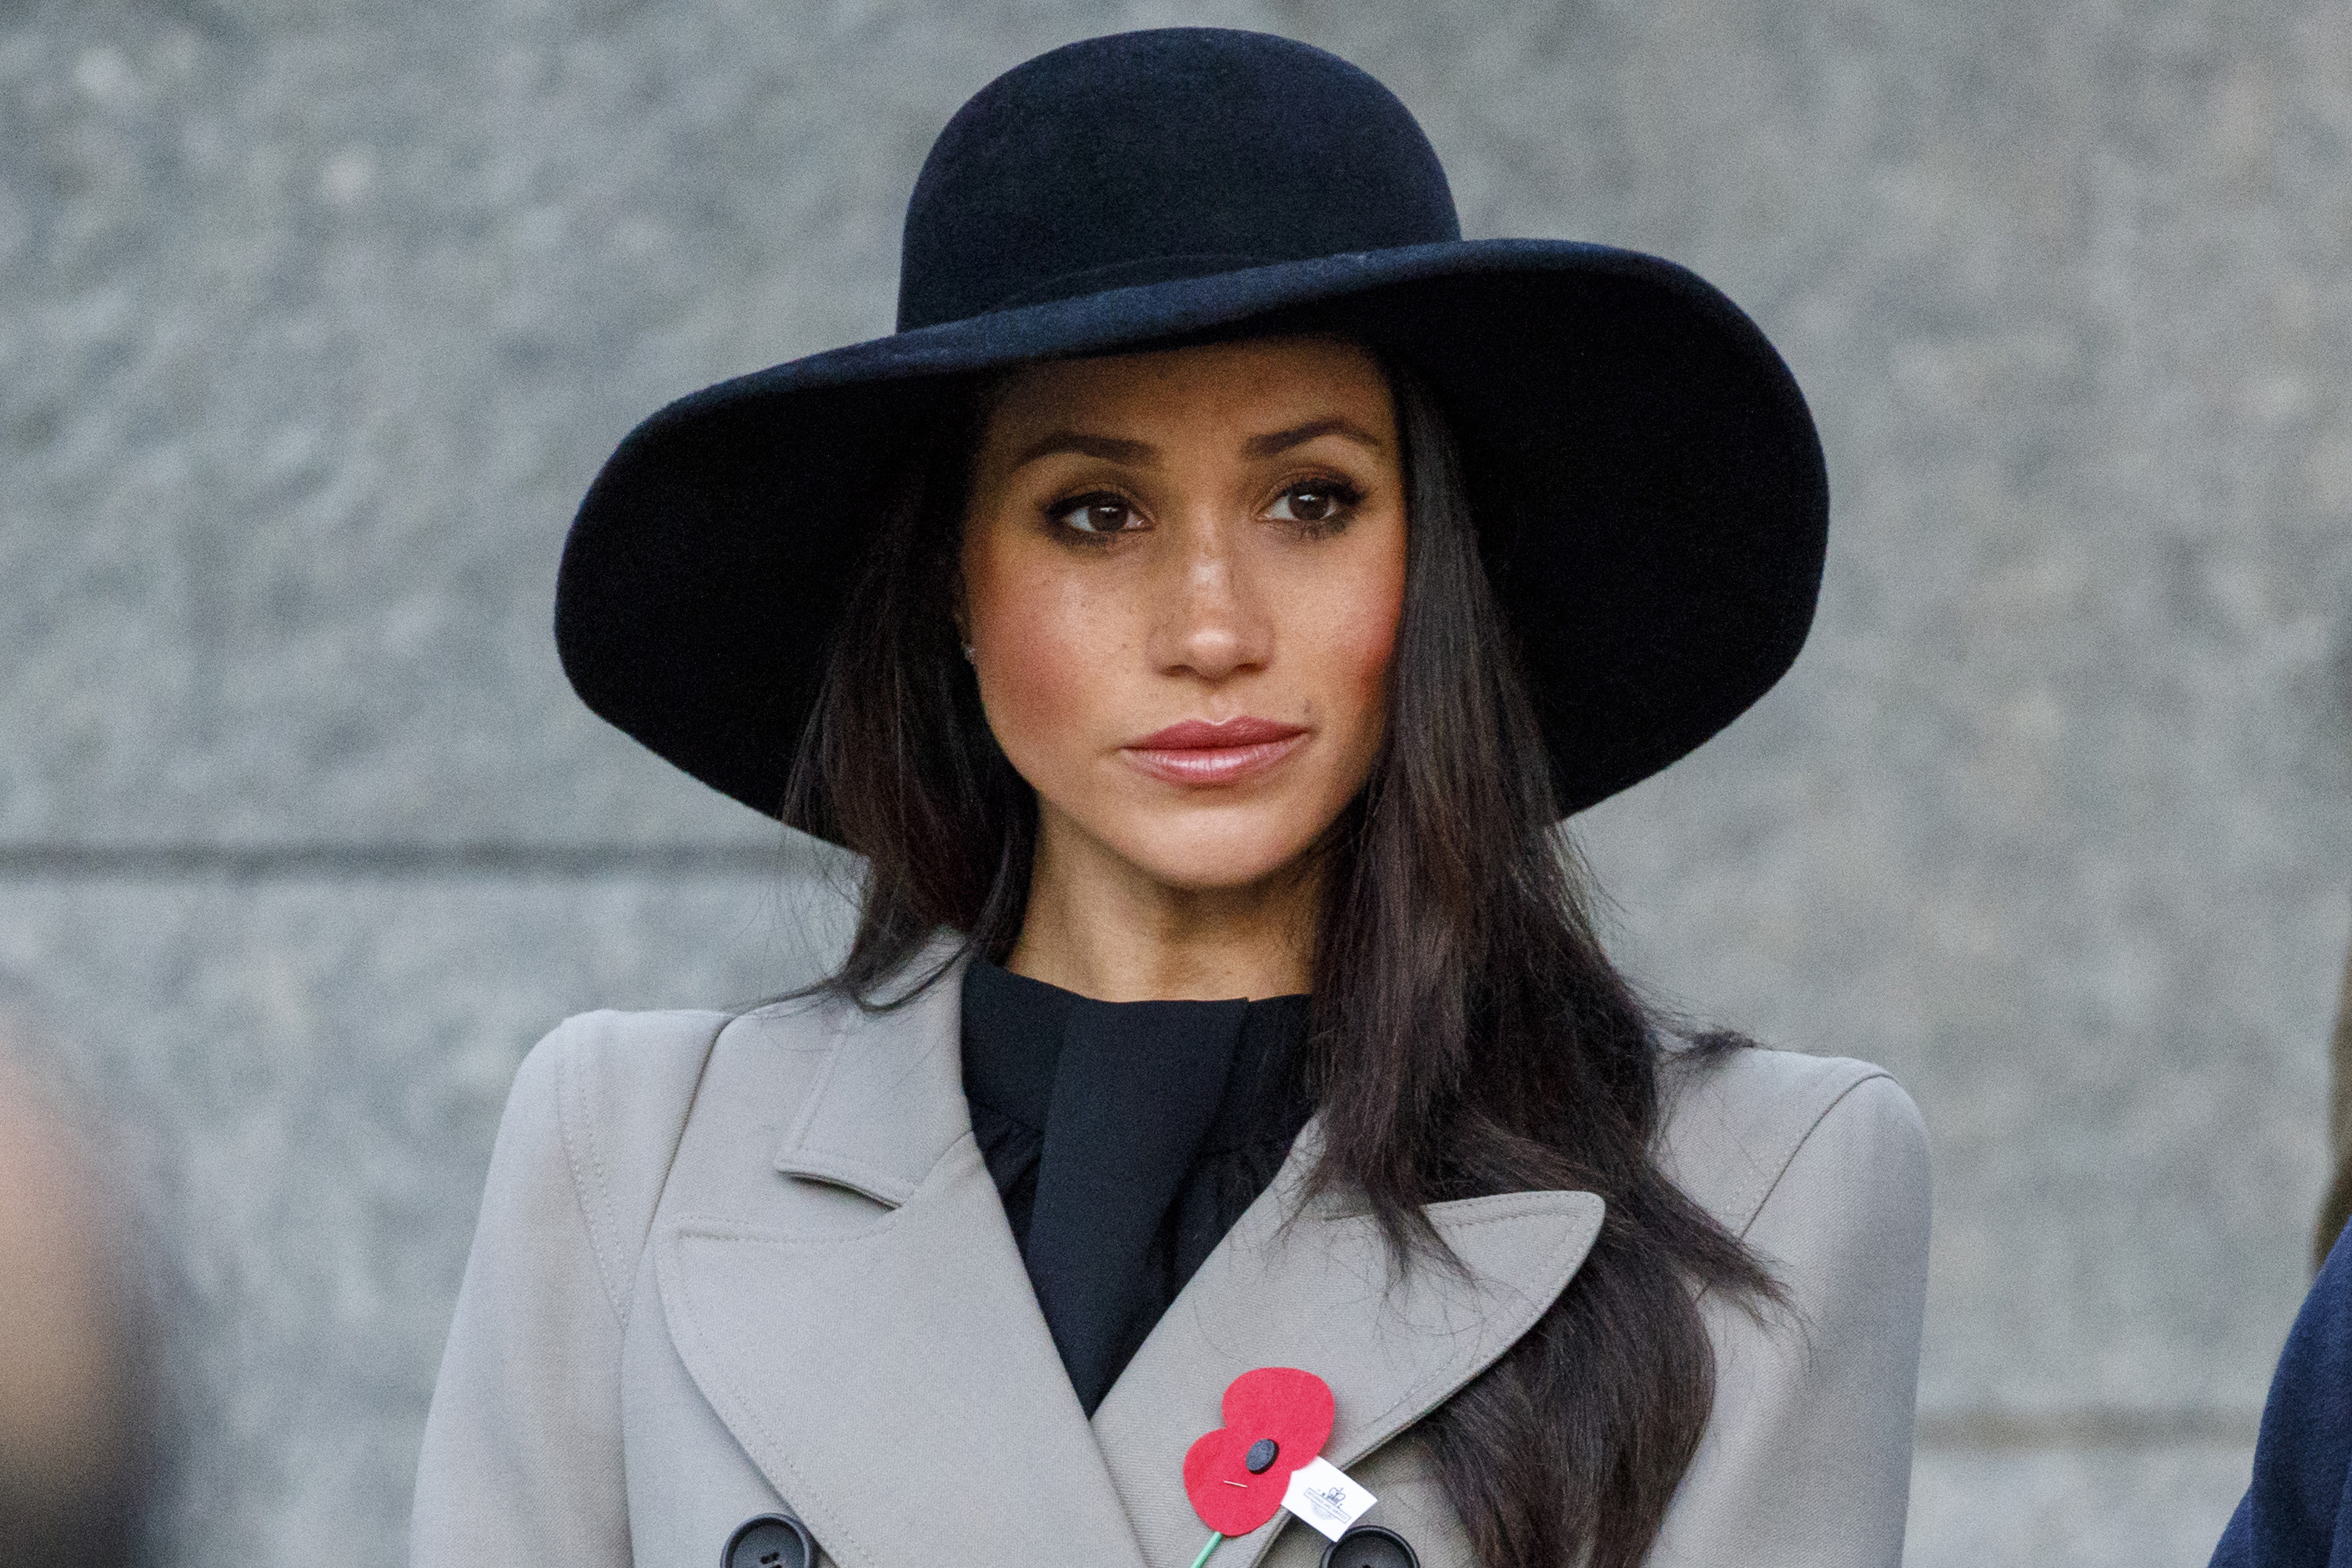 Meghan Markle, the US fiancee of Britain's Prince Harry, attends an Anzac Day dawn service at Hyde Park Corner on April 25, 2018 in London, England.